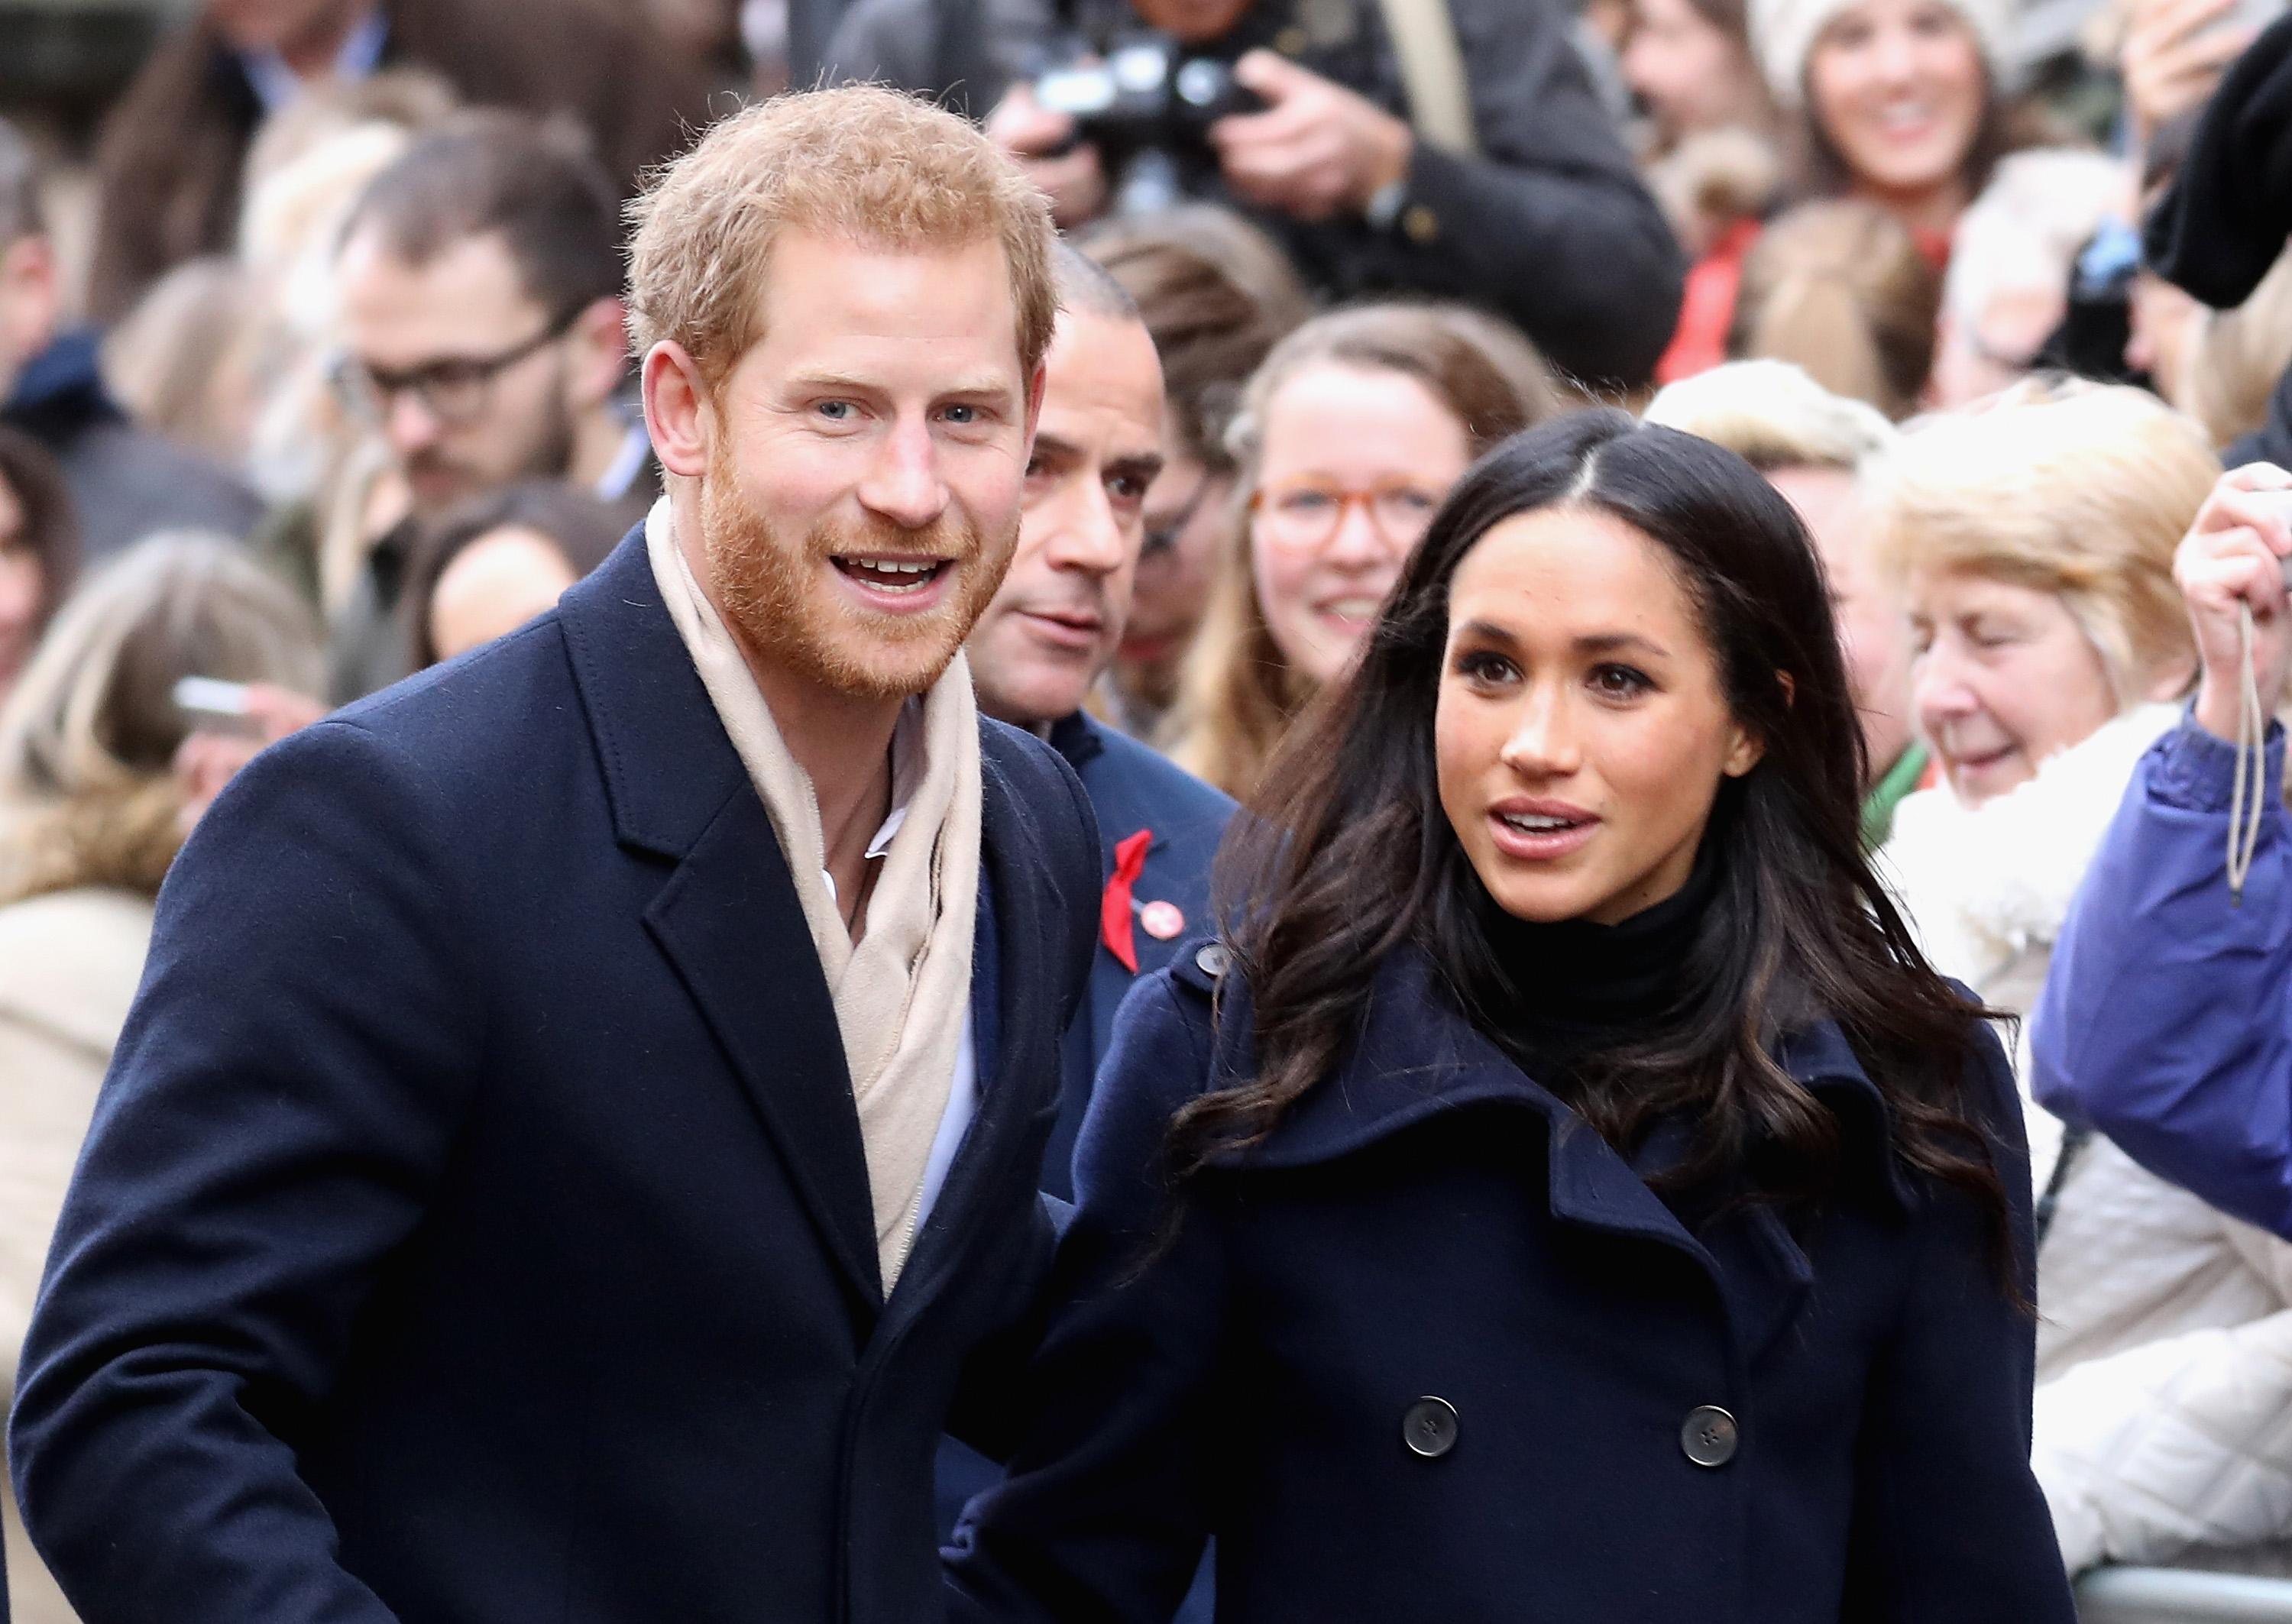 Prince Harry & Meghan Markle's Engagement Photos Released